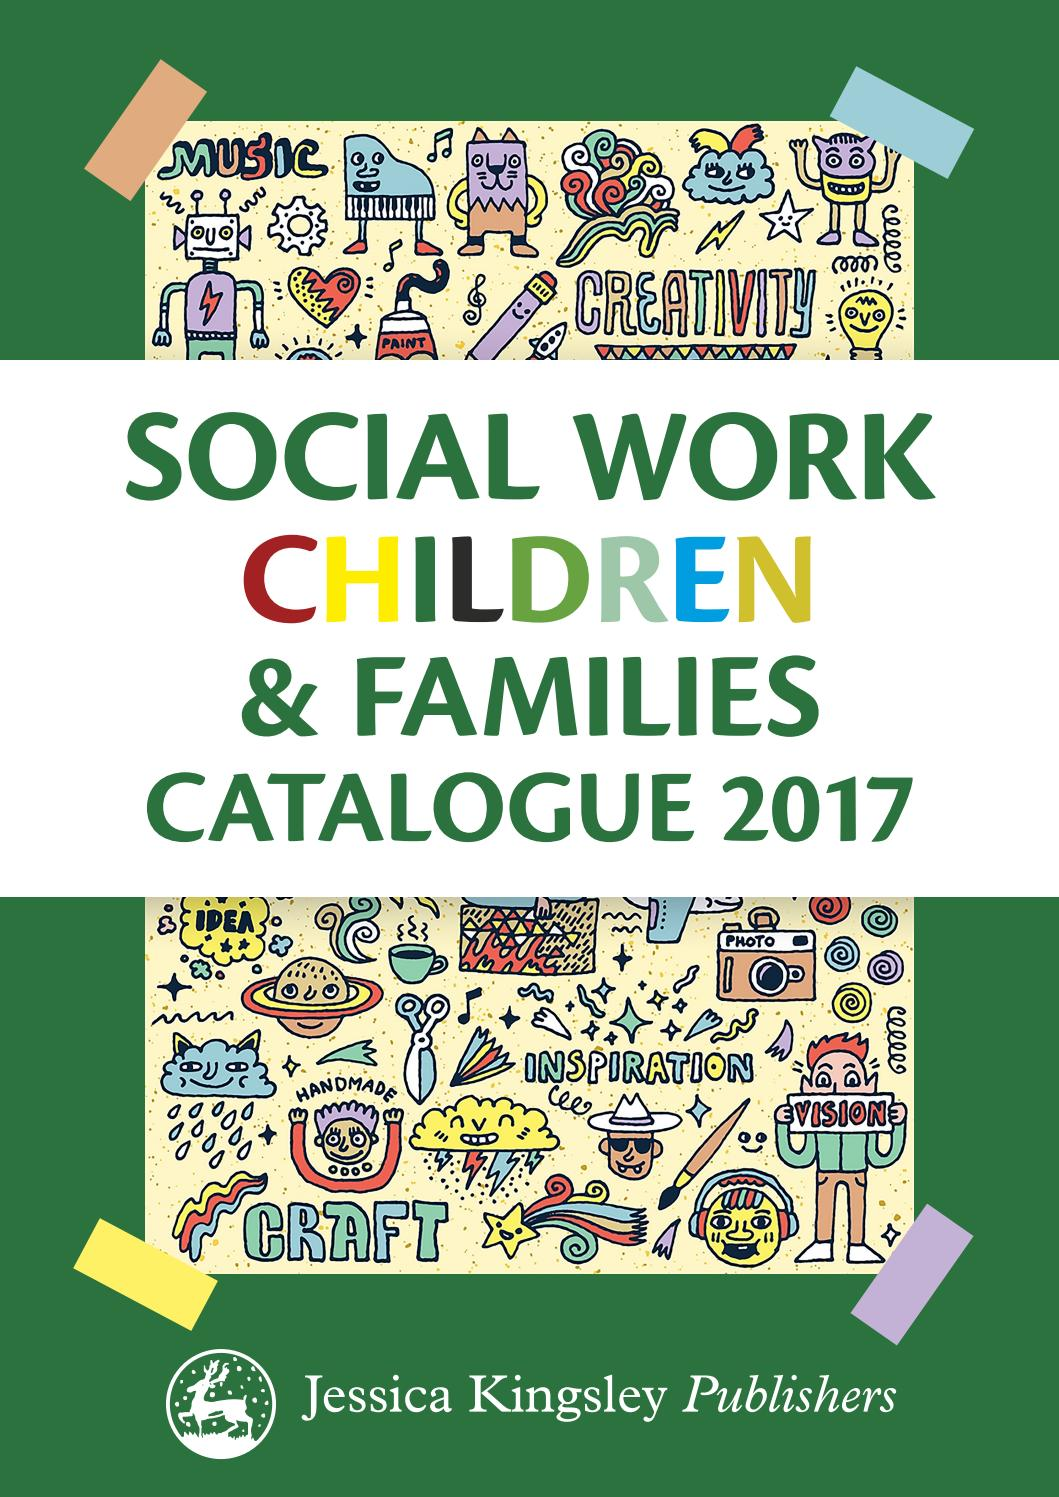 Jessica Kingsley Publishers - Social Work with Children & Families  Catalogue 2017 by Jessica Kingsley Publishers - issuu